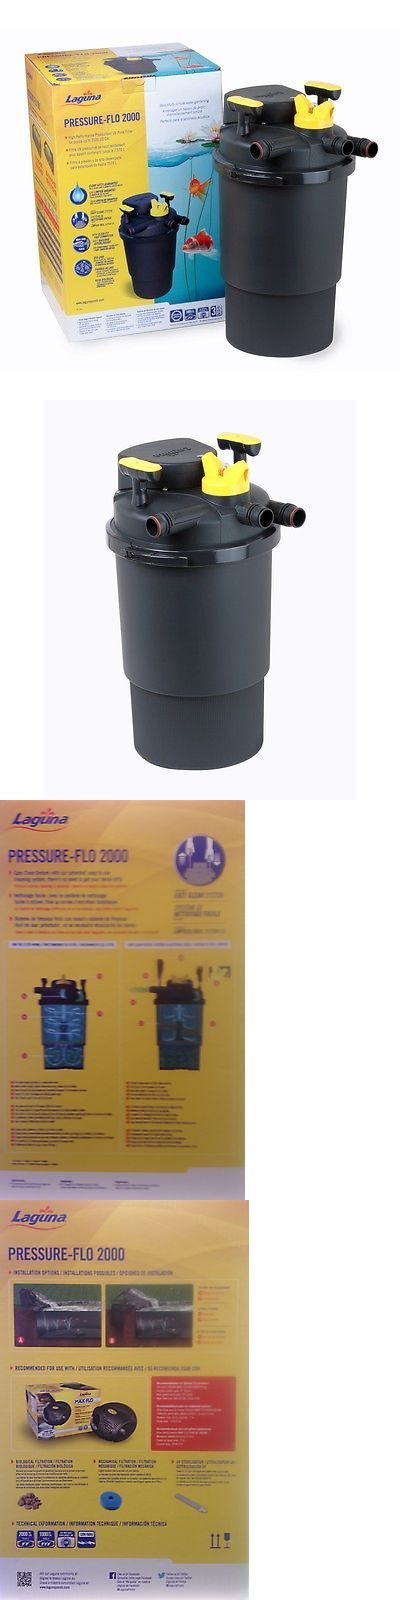 Other Ponds and Water Features 57230: Laguna Pressure-Flo 2000 Uvc Filter 13-Watt Uv Lamp -> BUY IT NOW ONLY: $299.99 on eBay!